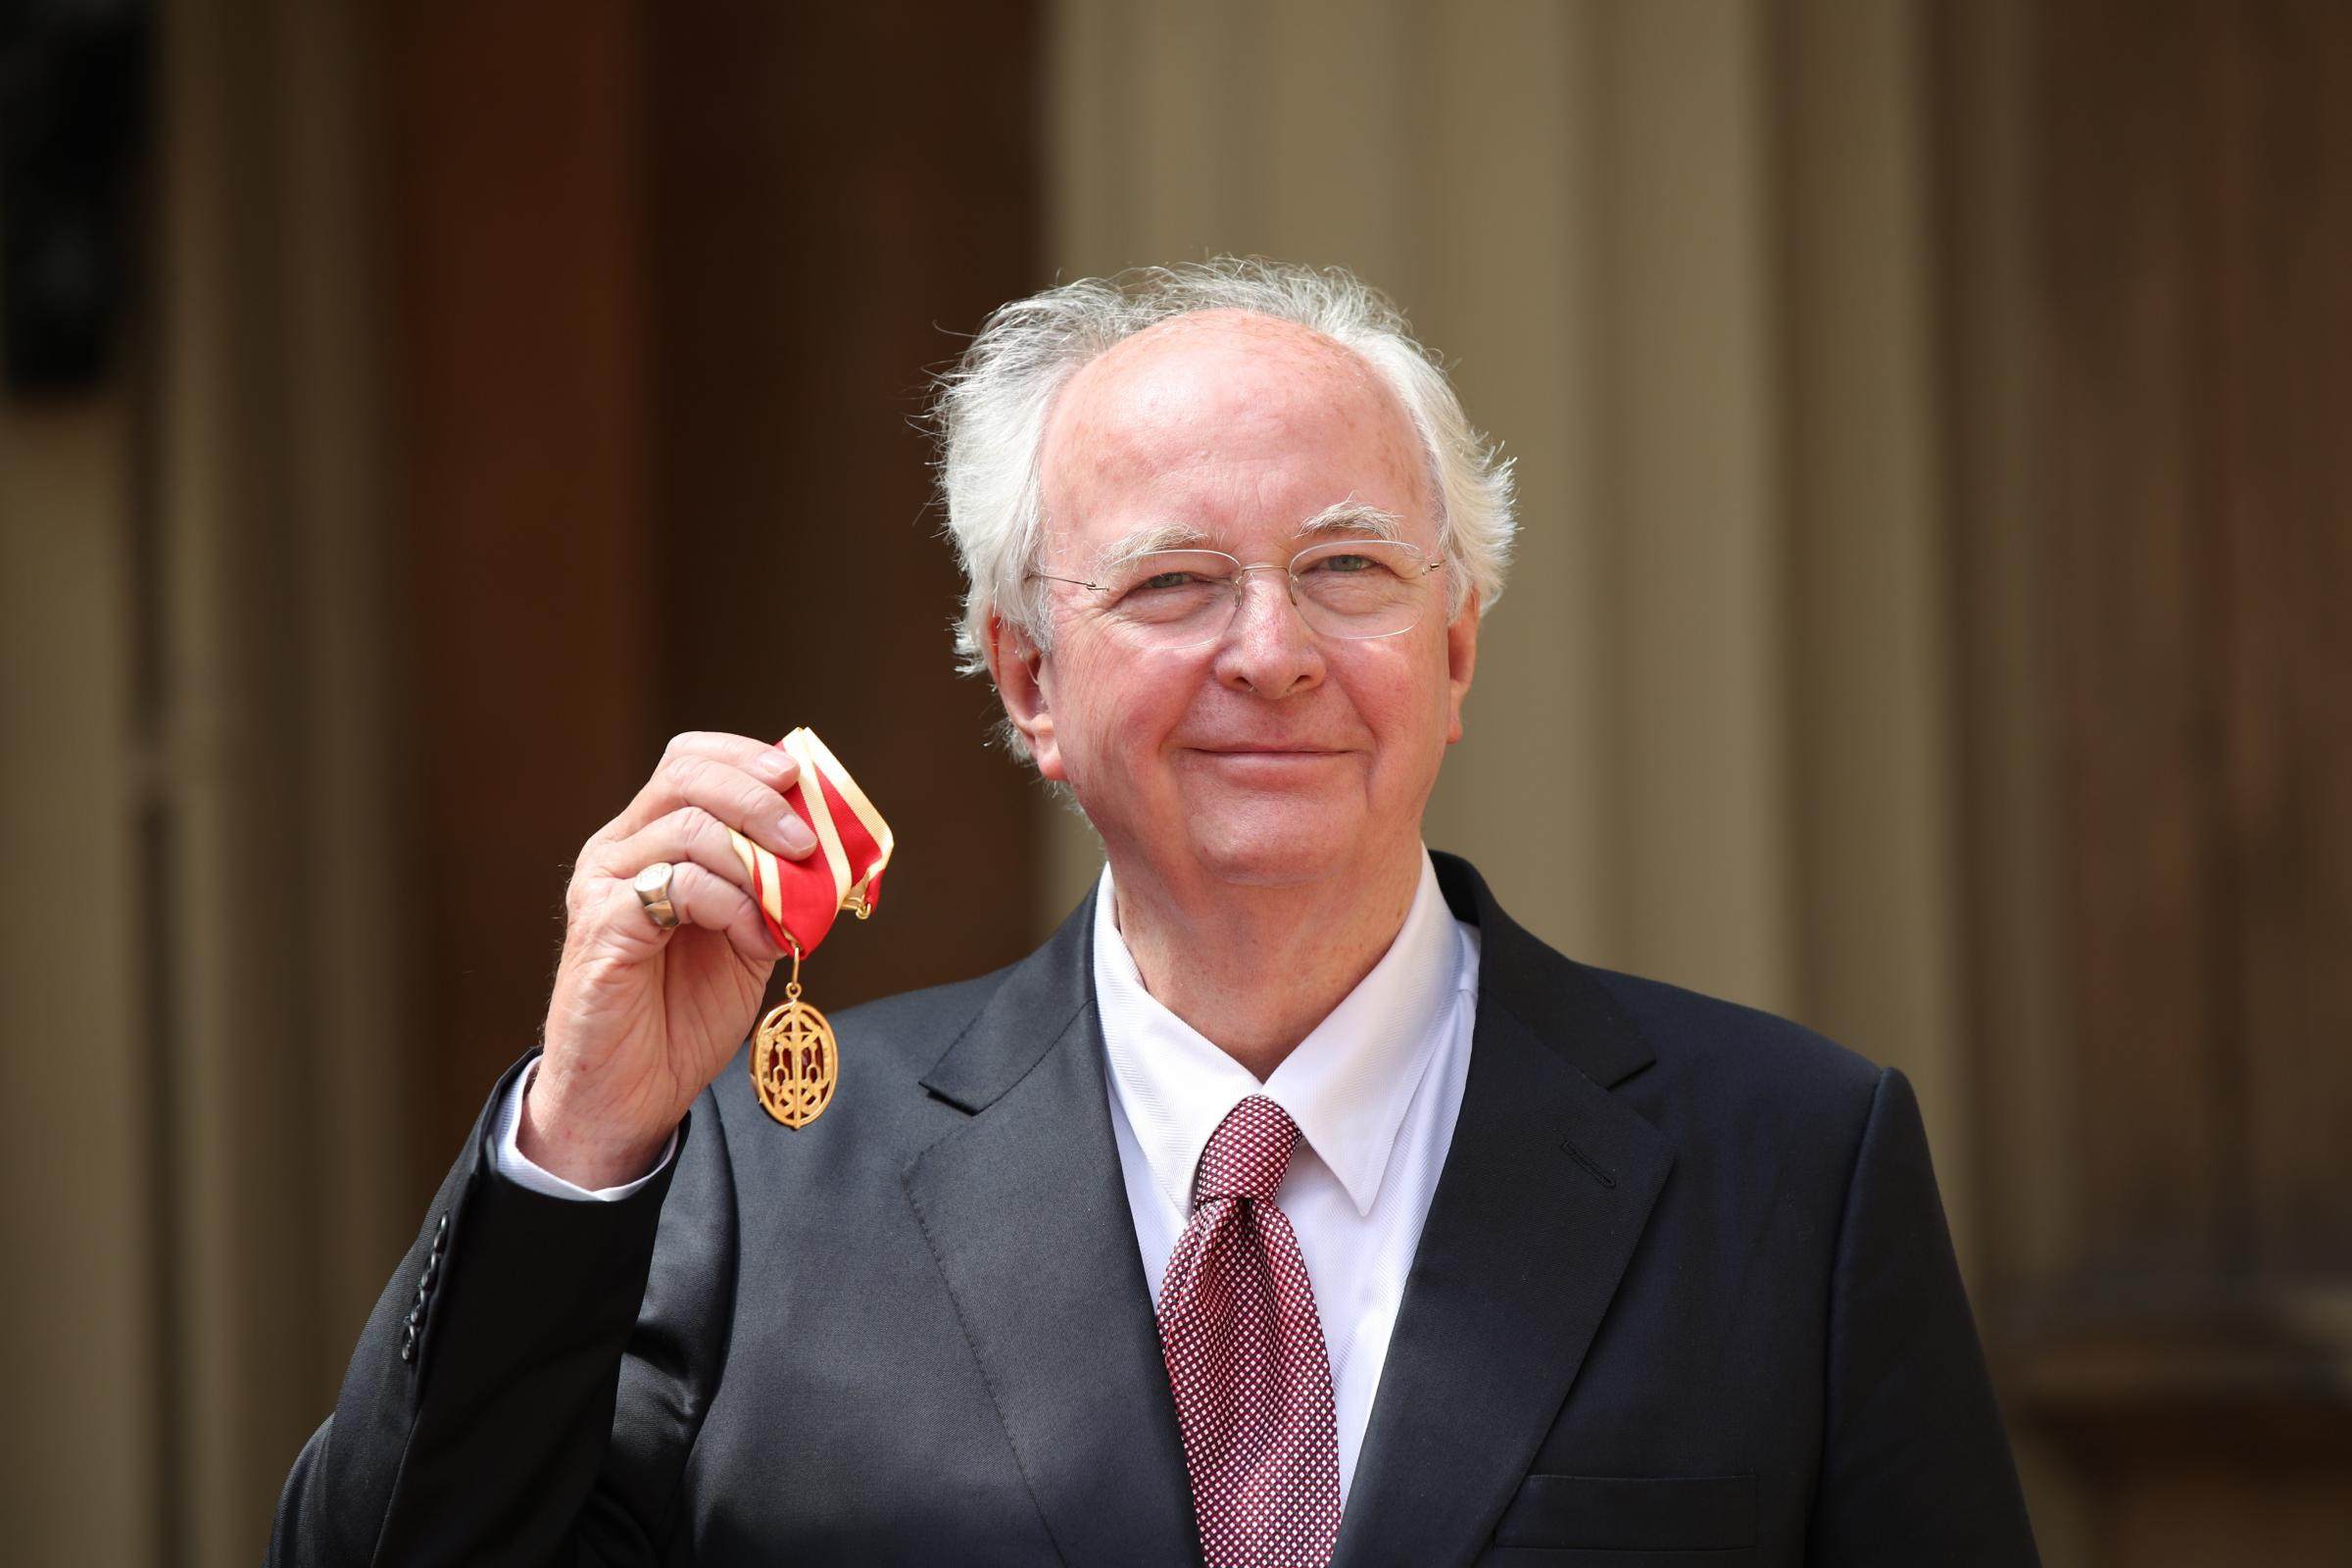 Philip Pullman with his knighthood